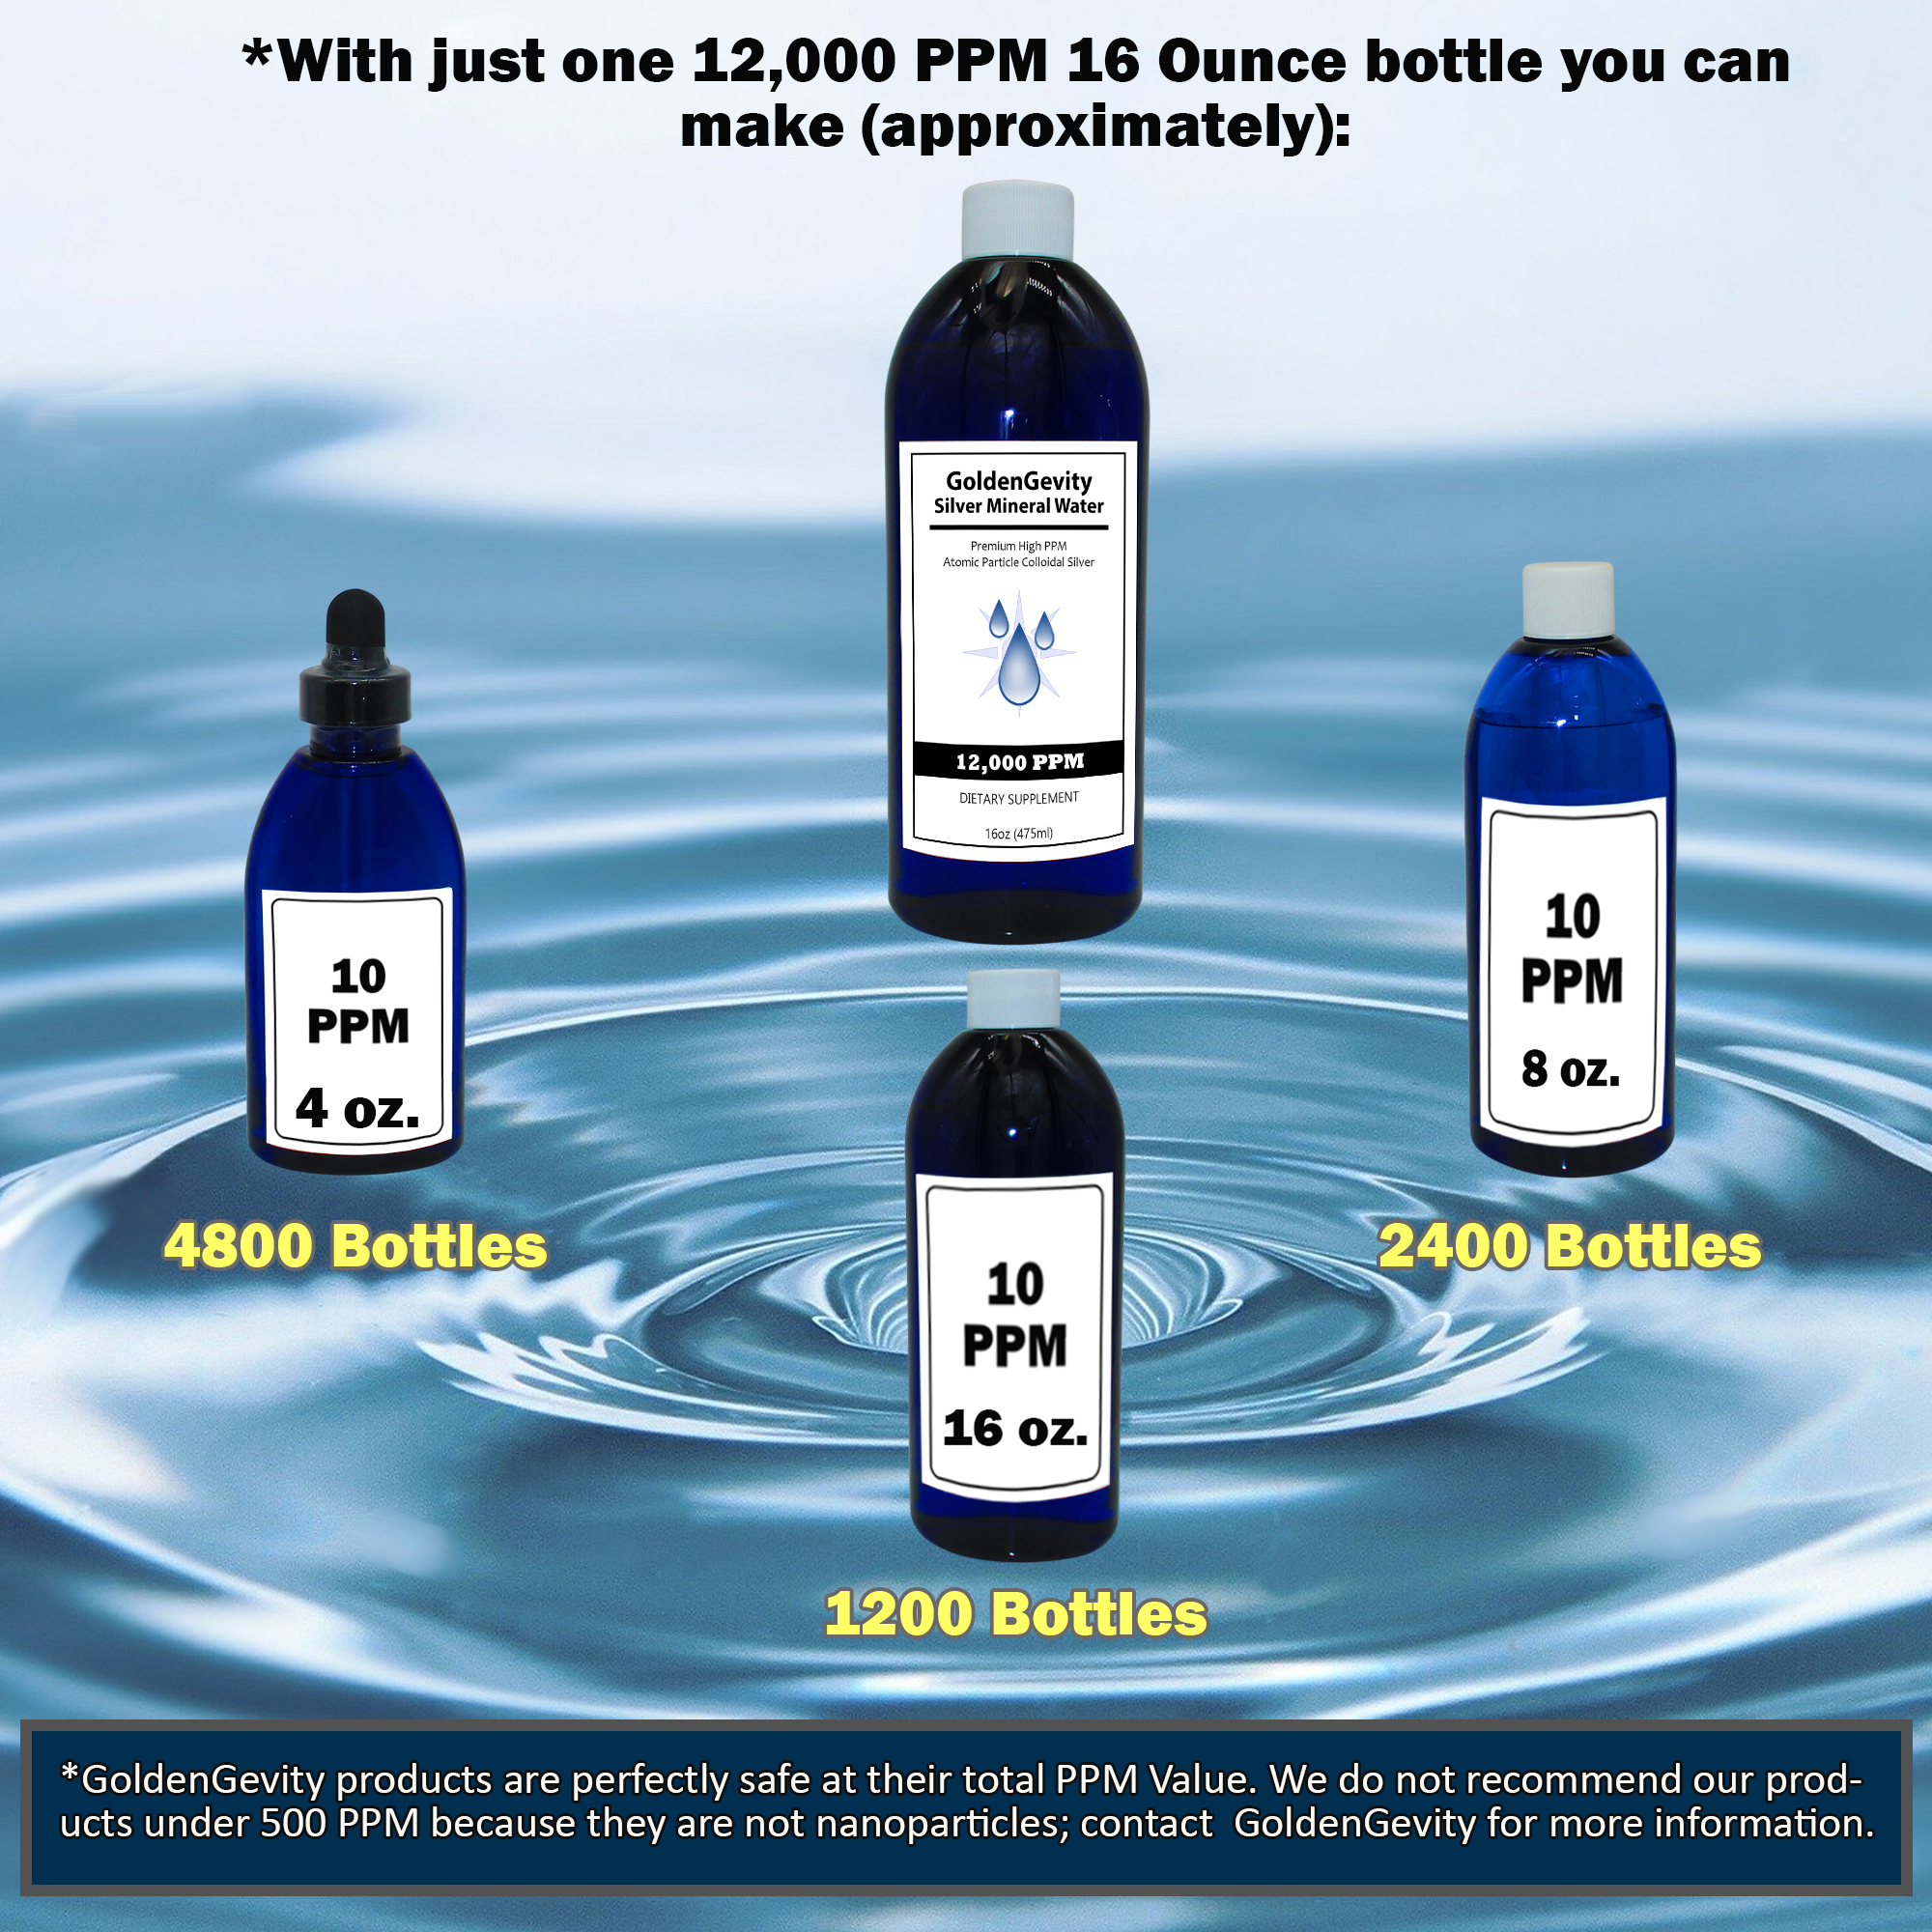 12000 PPM Colloidal Silver can make thousands of ounces